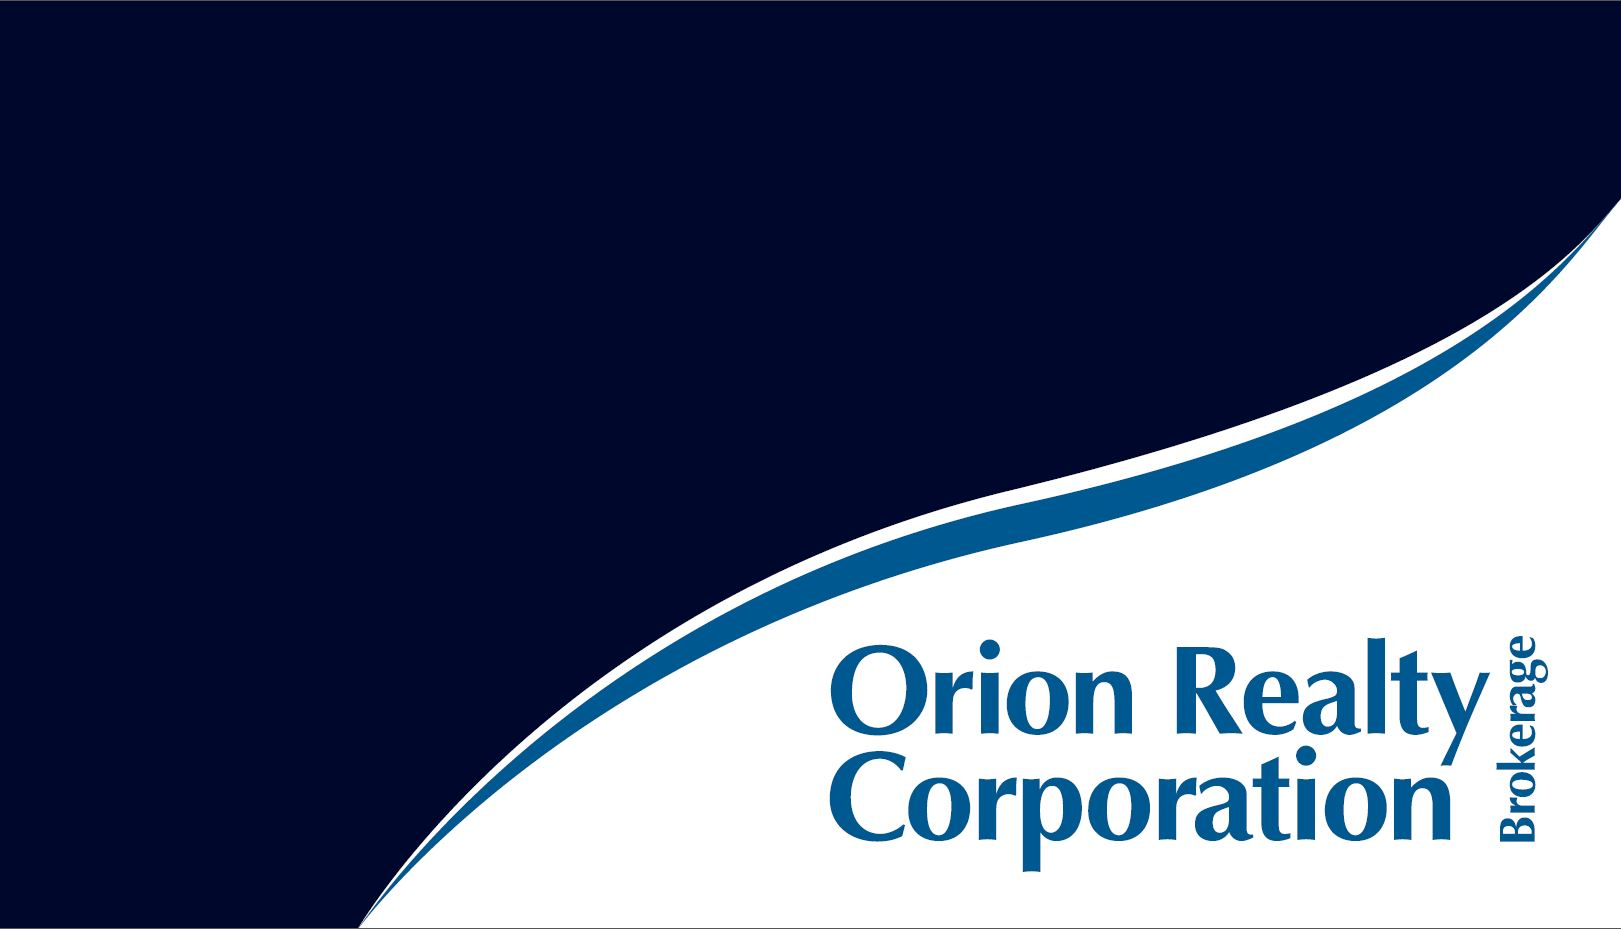 Meet Our Award Winning Team | Orion Realty Corporation